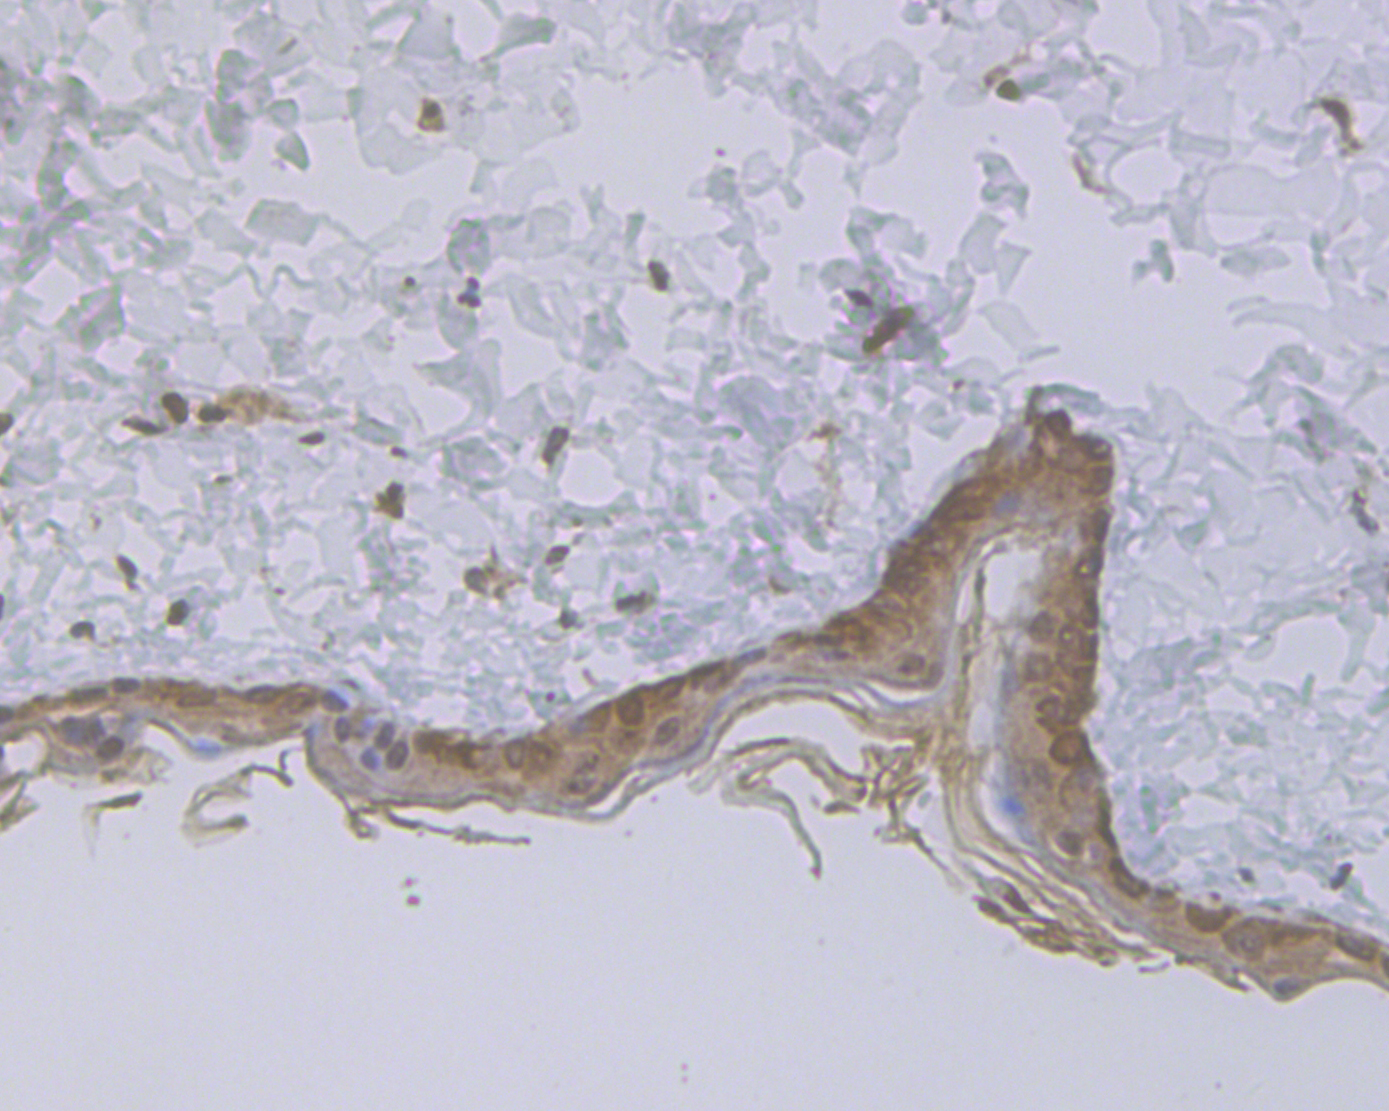 Immunohistochemical analysis of paraffin-embedded rat skin tissue using anti-Cytokeratin 5+6 antibody. The section was pre-treated using heat mediated antigen retrieval with sodium citrate buffer (pH 6.0) for 20 minutes. The tissues were blocked in 5% BSA for 30 minutes at room temperature, washed with ddH2O and PBS, and then probed with the antibody (ER1901-86) at 1/50 dilution, for 30 minutes at room temperature and detected using an HRP conjugated compact polymer system. DAB was used as the chromogen. Counter stained with hematoxylin and mounted with DPX.